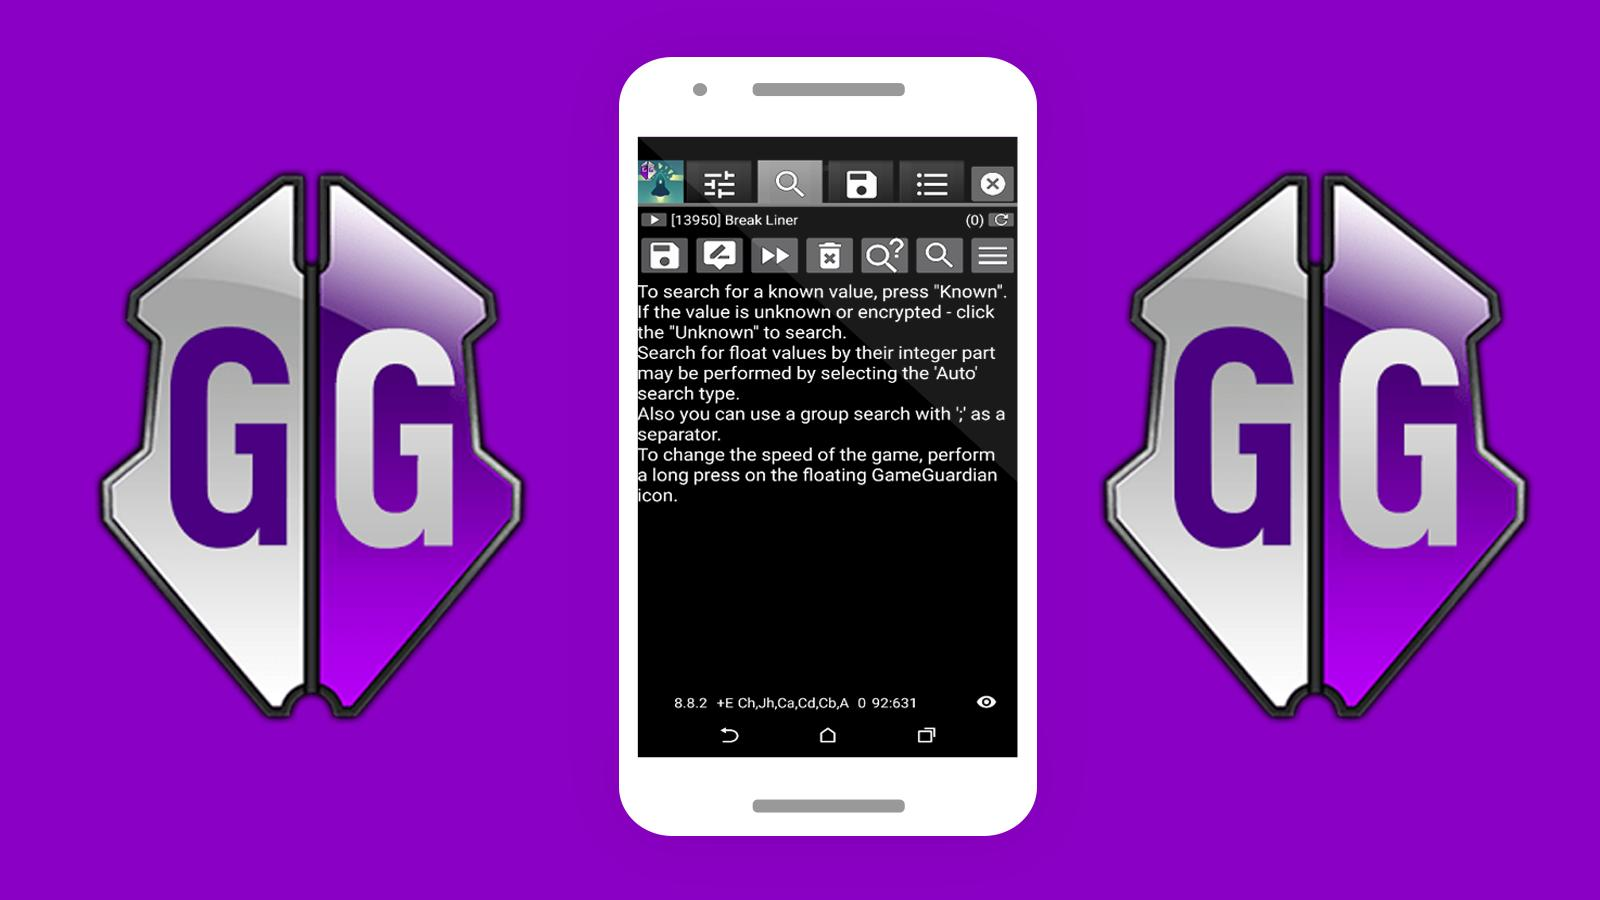 Game Guardian 2018 for Android - APK Download